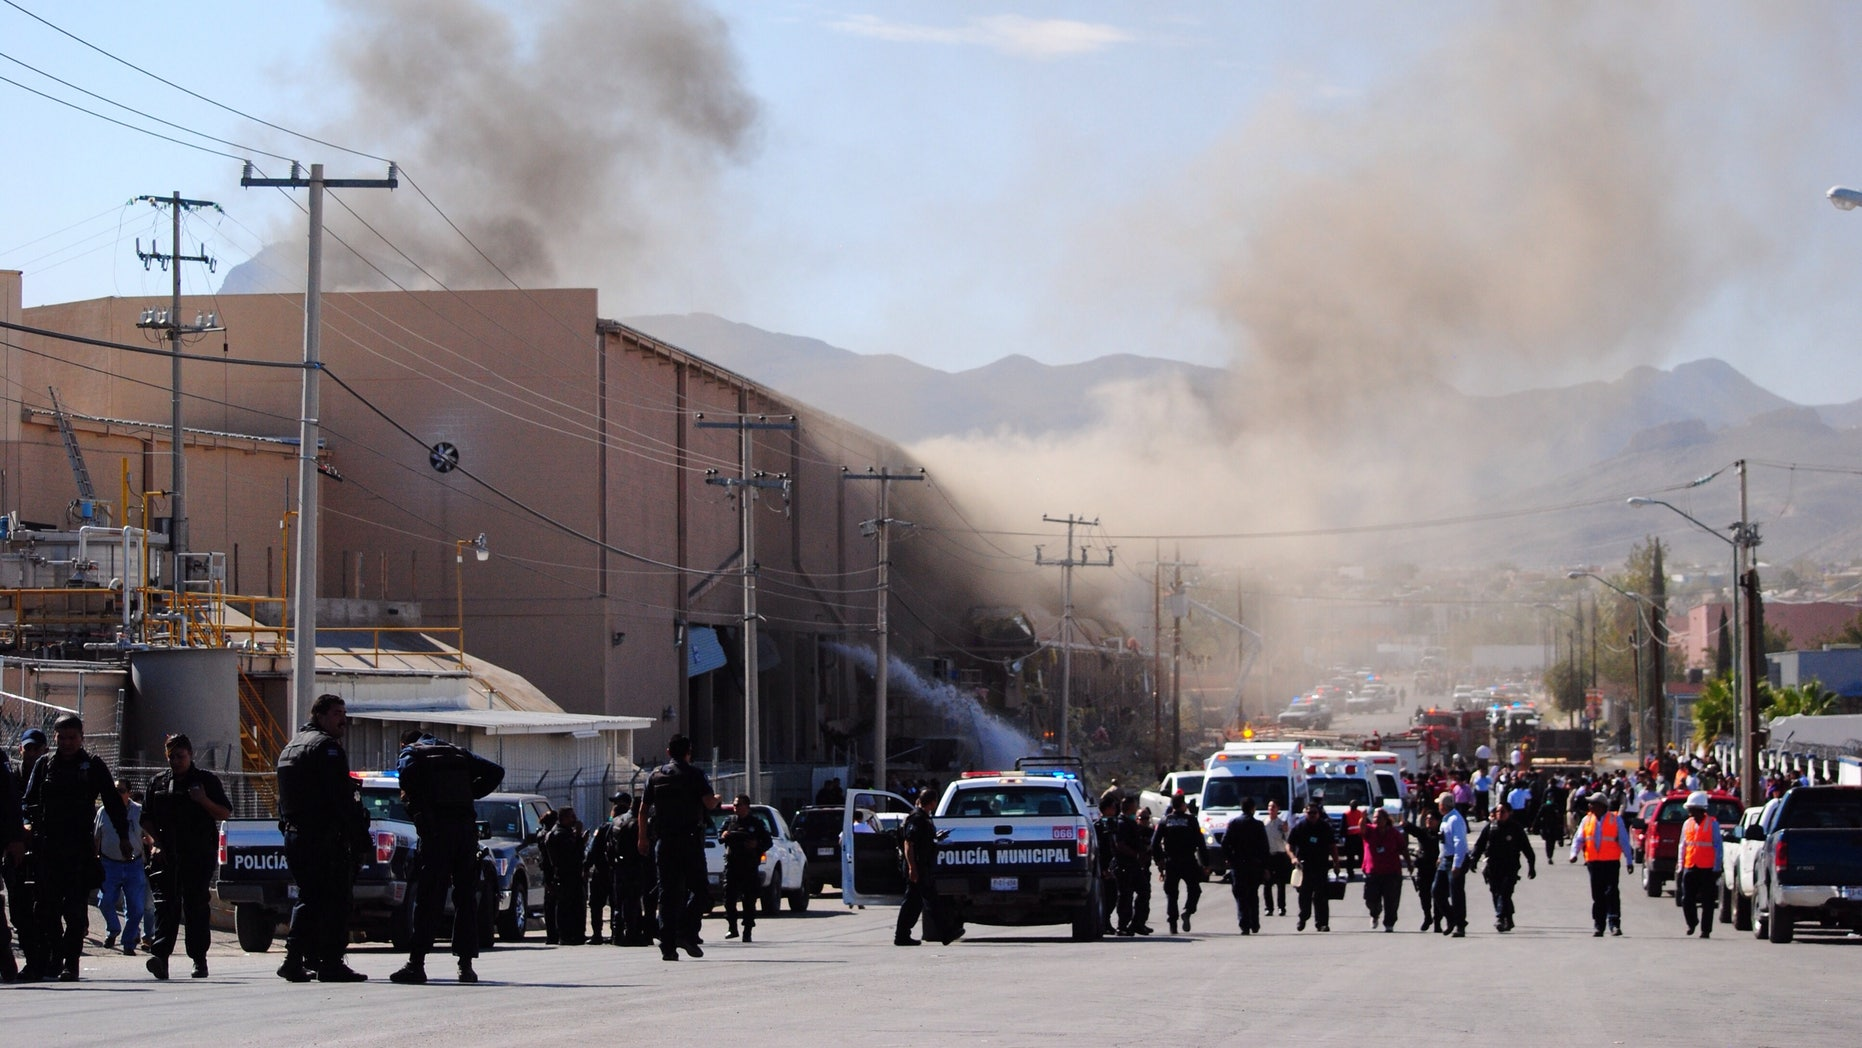 Police and rescue workers gather at a candy factory after an explosion in Ciudad Juarez, Mexico, Thursday, Oct. 24, 2013.  The explosion happened at the Dulces Blueberry factory and caused the floor to collapse, said factory worker Ismael Bouchet. (AP Photo/Raymundo Ruiz)